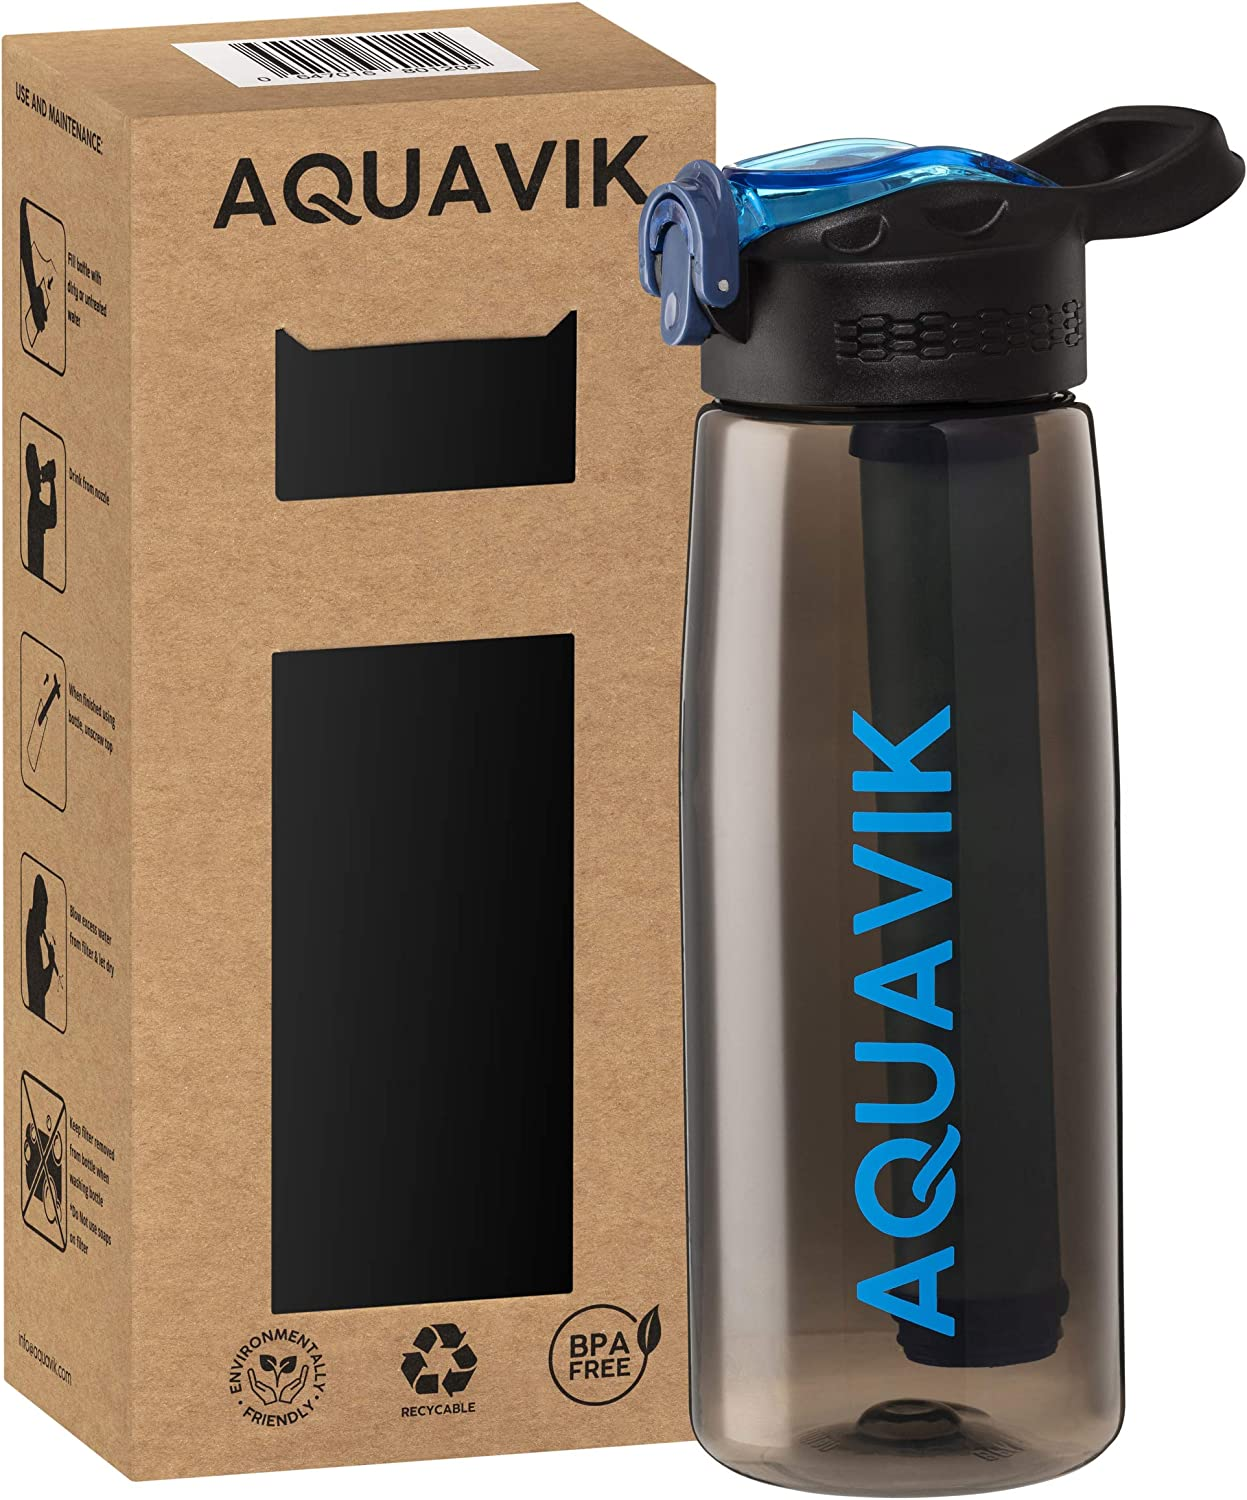 AquaVik Portable Water Filter Bottle